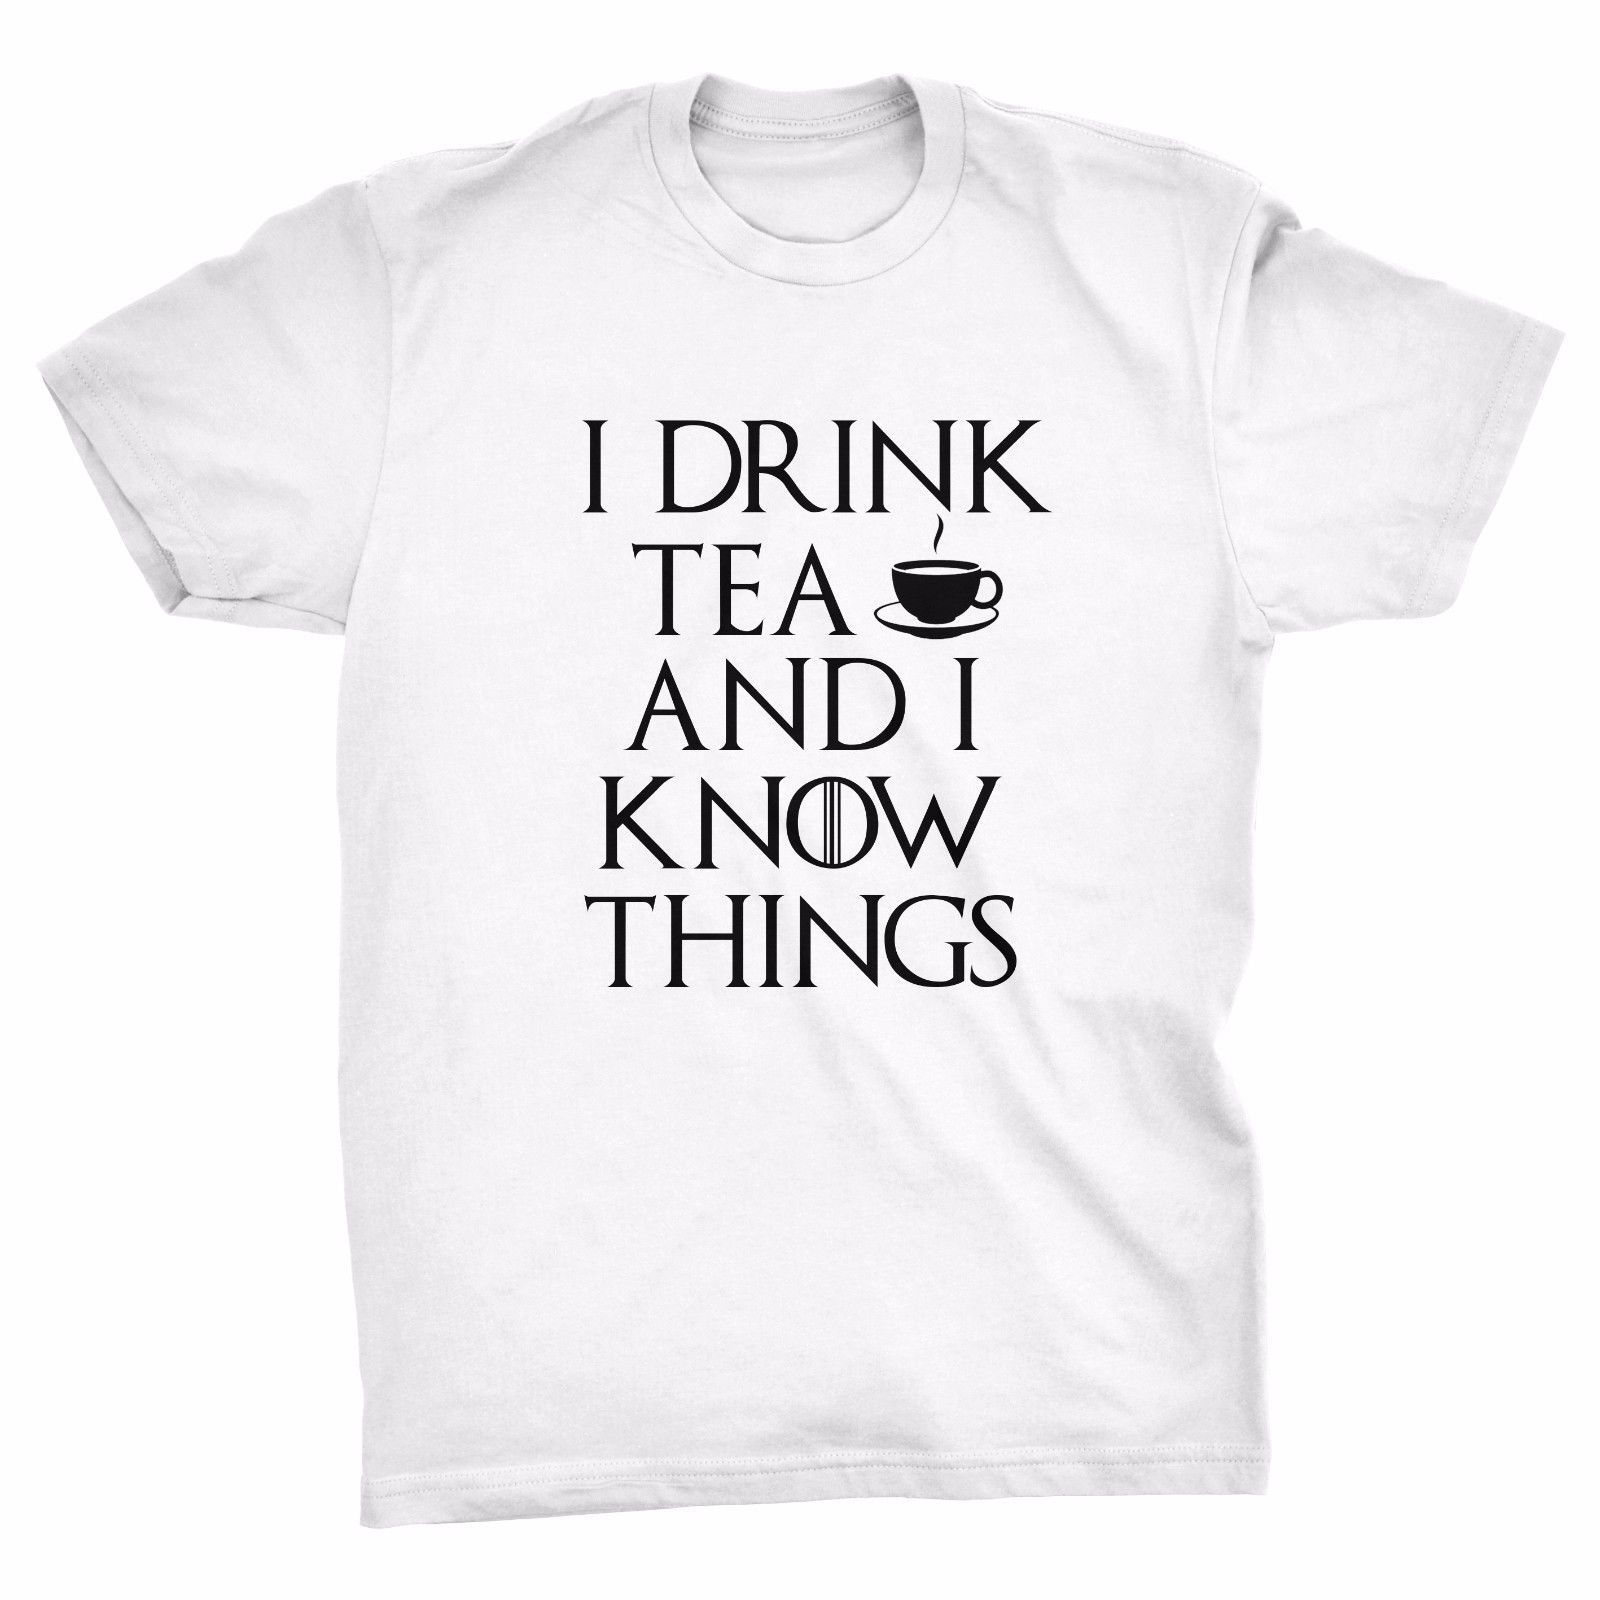 I Drink Tea And I Know Things Funny T Shirt Game Of Thrones Wine Meme Harajuku Tops Fashion Classic Unique free shipping in T Shirts from Men 39 s Clothing